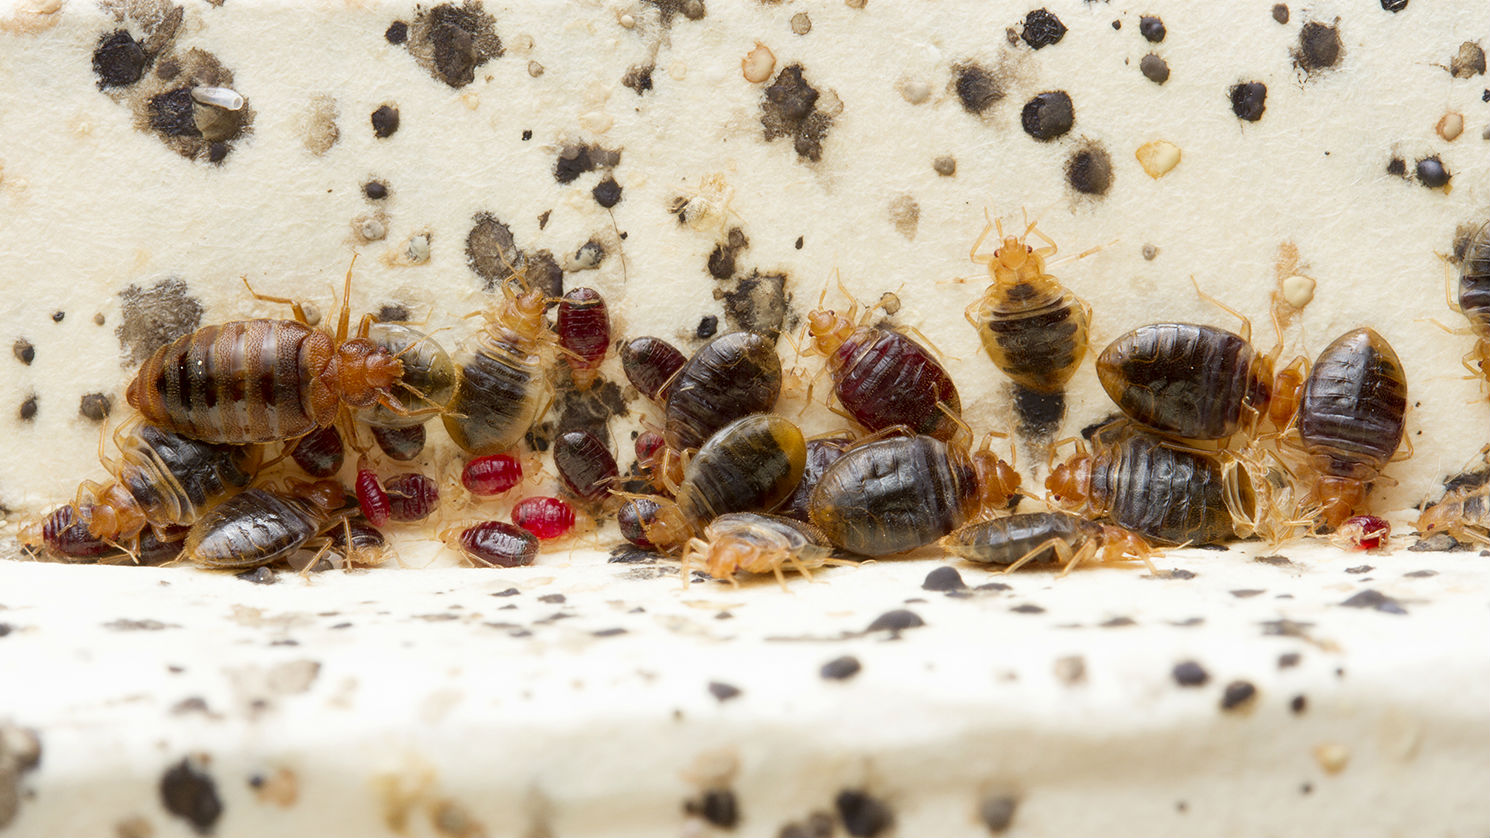 Bed Bug Insecticides Causing Sickness, Officials Warn Bed Bug Insecticides Causing Sickness, Officials Warn new pics